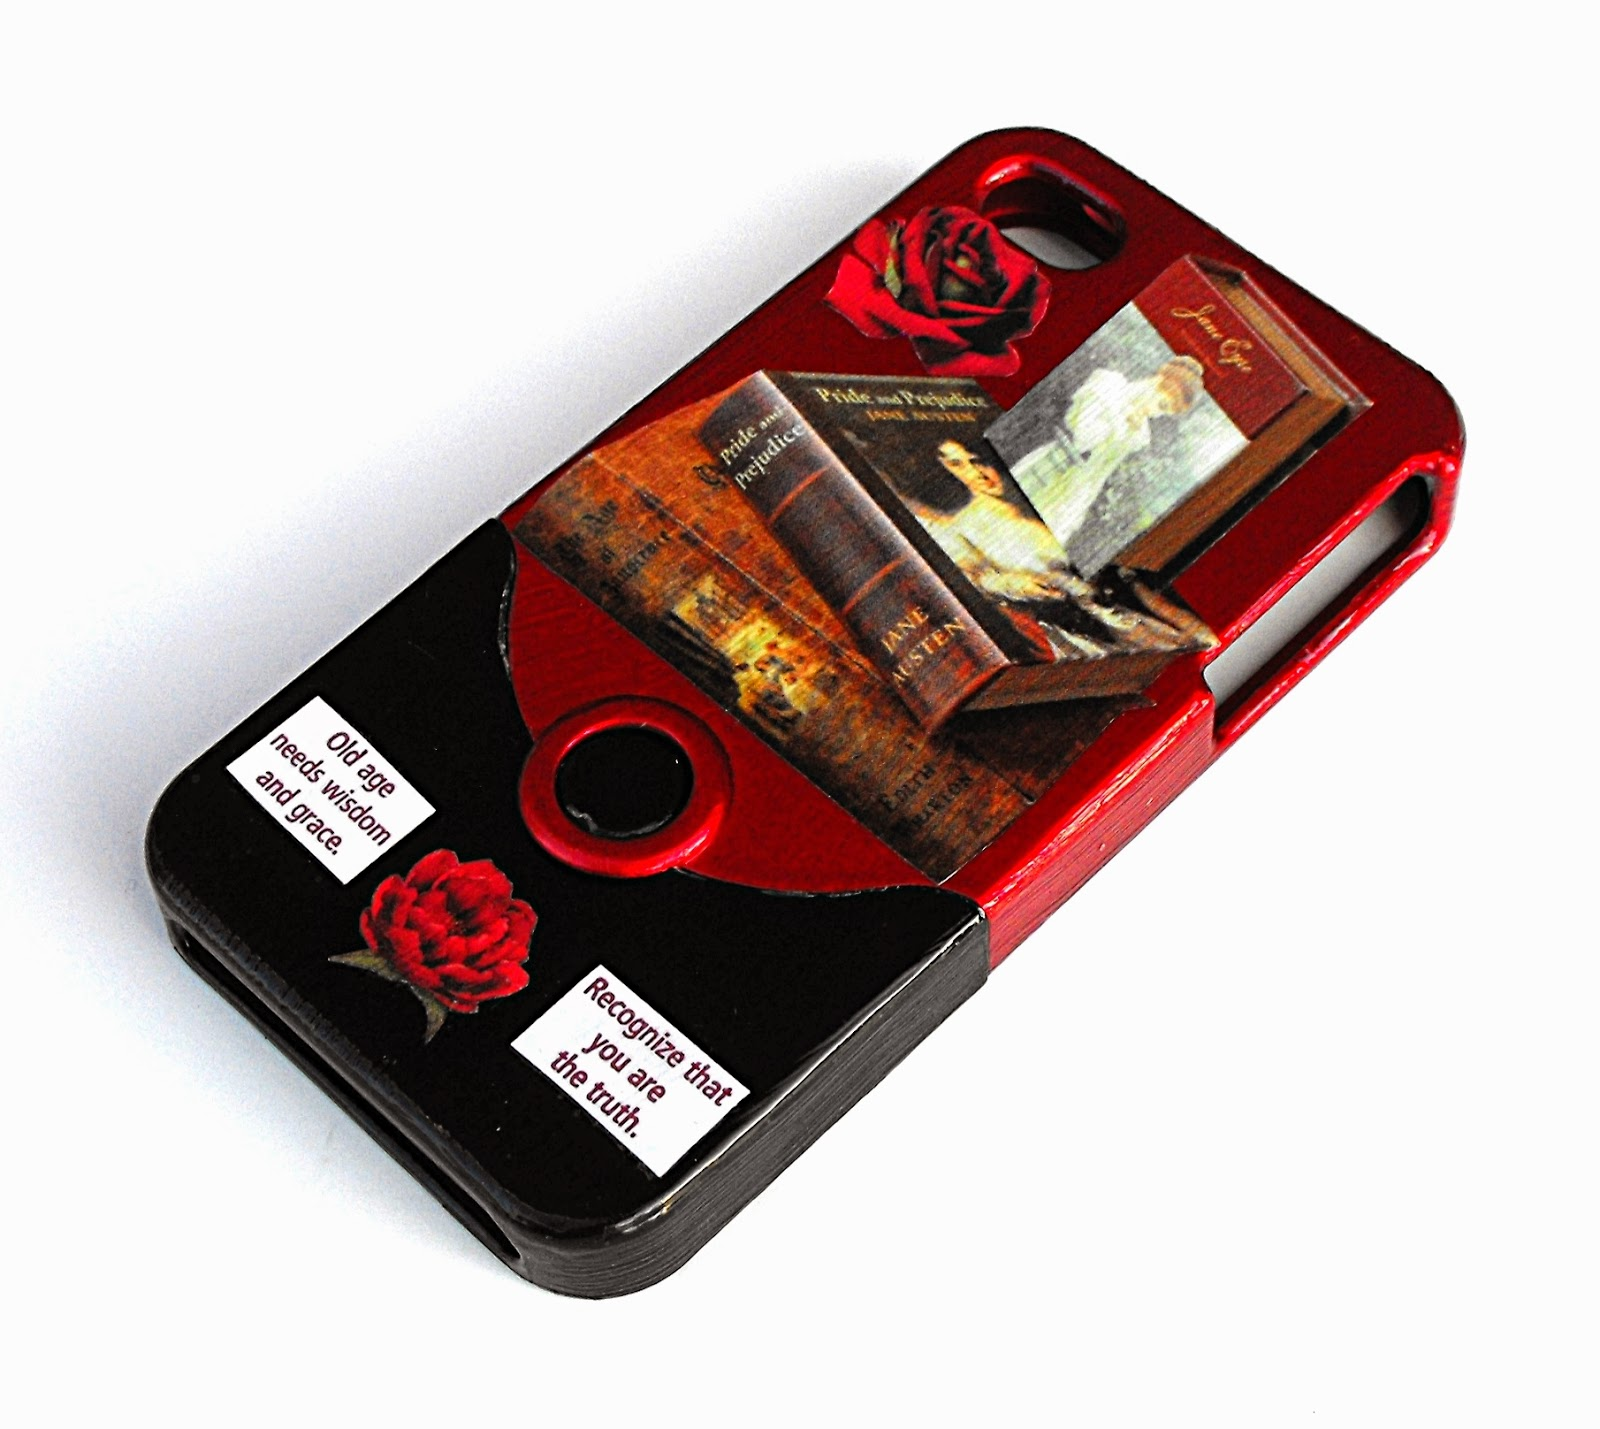 https://www.etsy.com/listing/151142947/literary-lady-legends-iphone-4-case?ref=shop_home_active_22&ga_search_query=rose